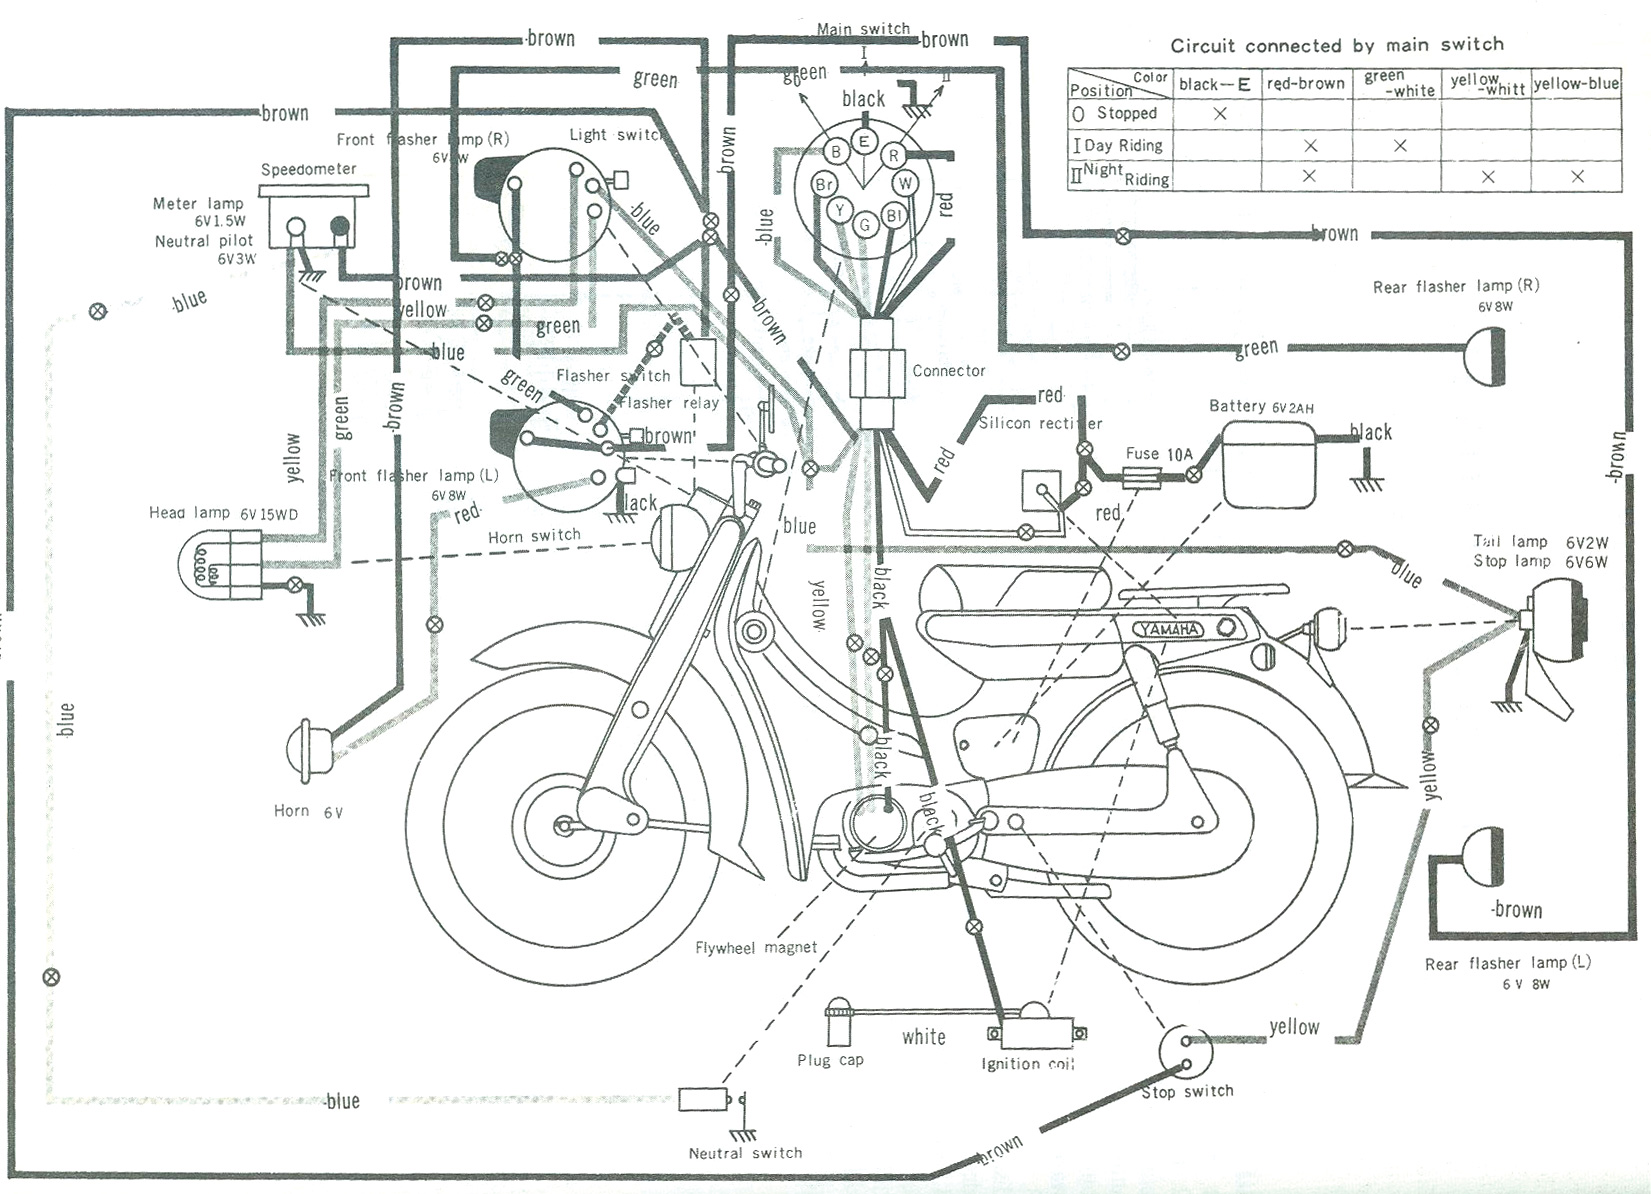 yamaha dt 100 wiring diagram wiring diagram experts 1980 yamaha dt 100 wiring schematics [ 1651 x 1194 Pixel ]